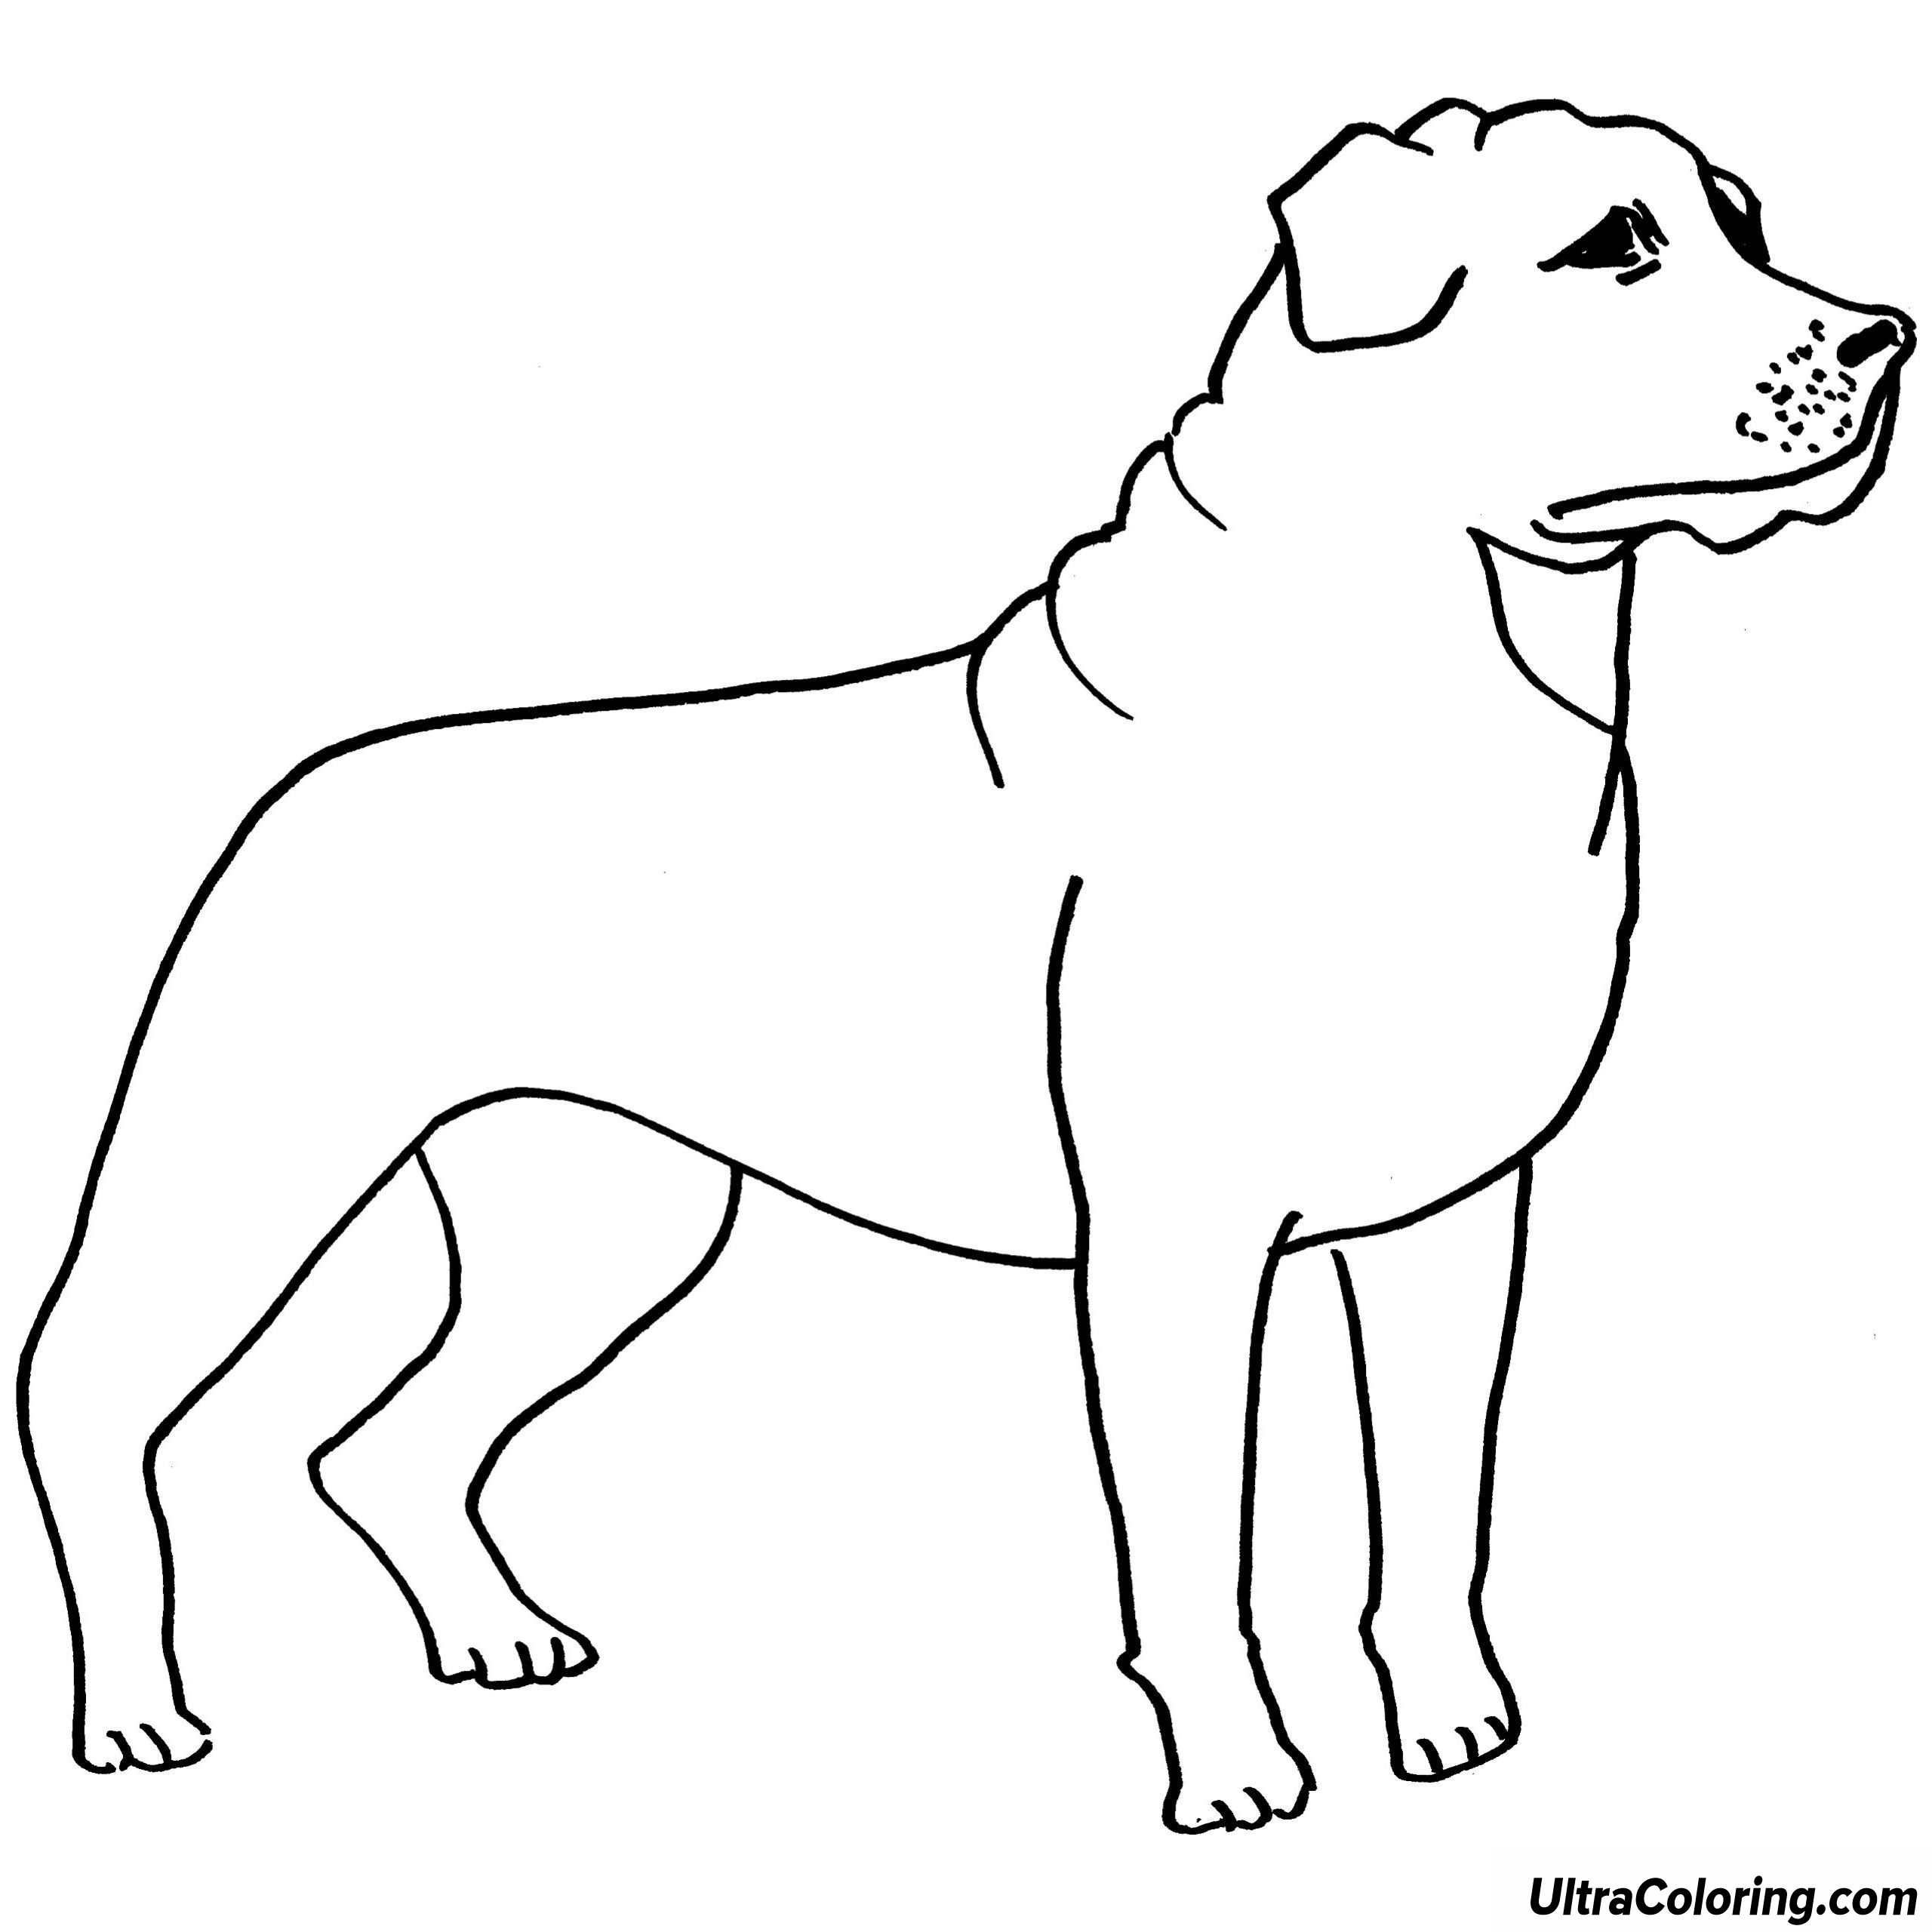 2560x2560 Rottweiler Coloring Pages Large Blank Sheet Template Printable